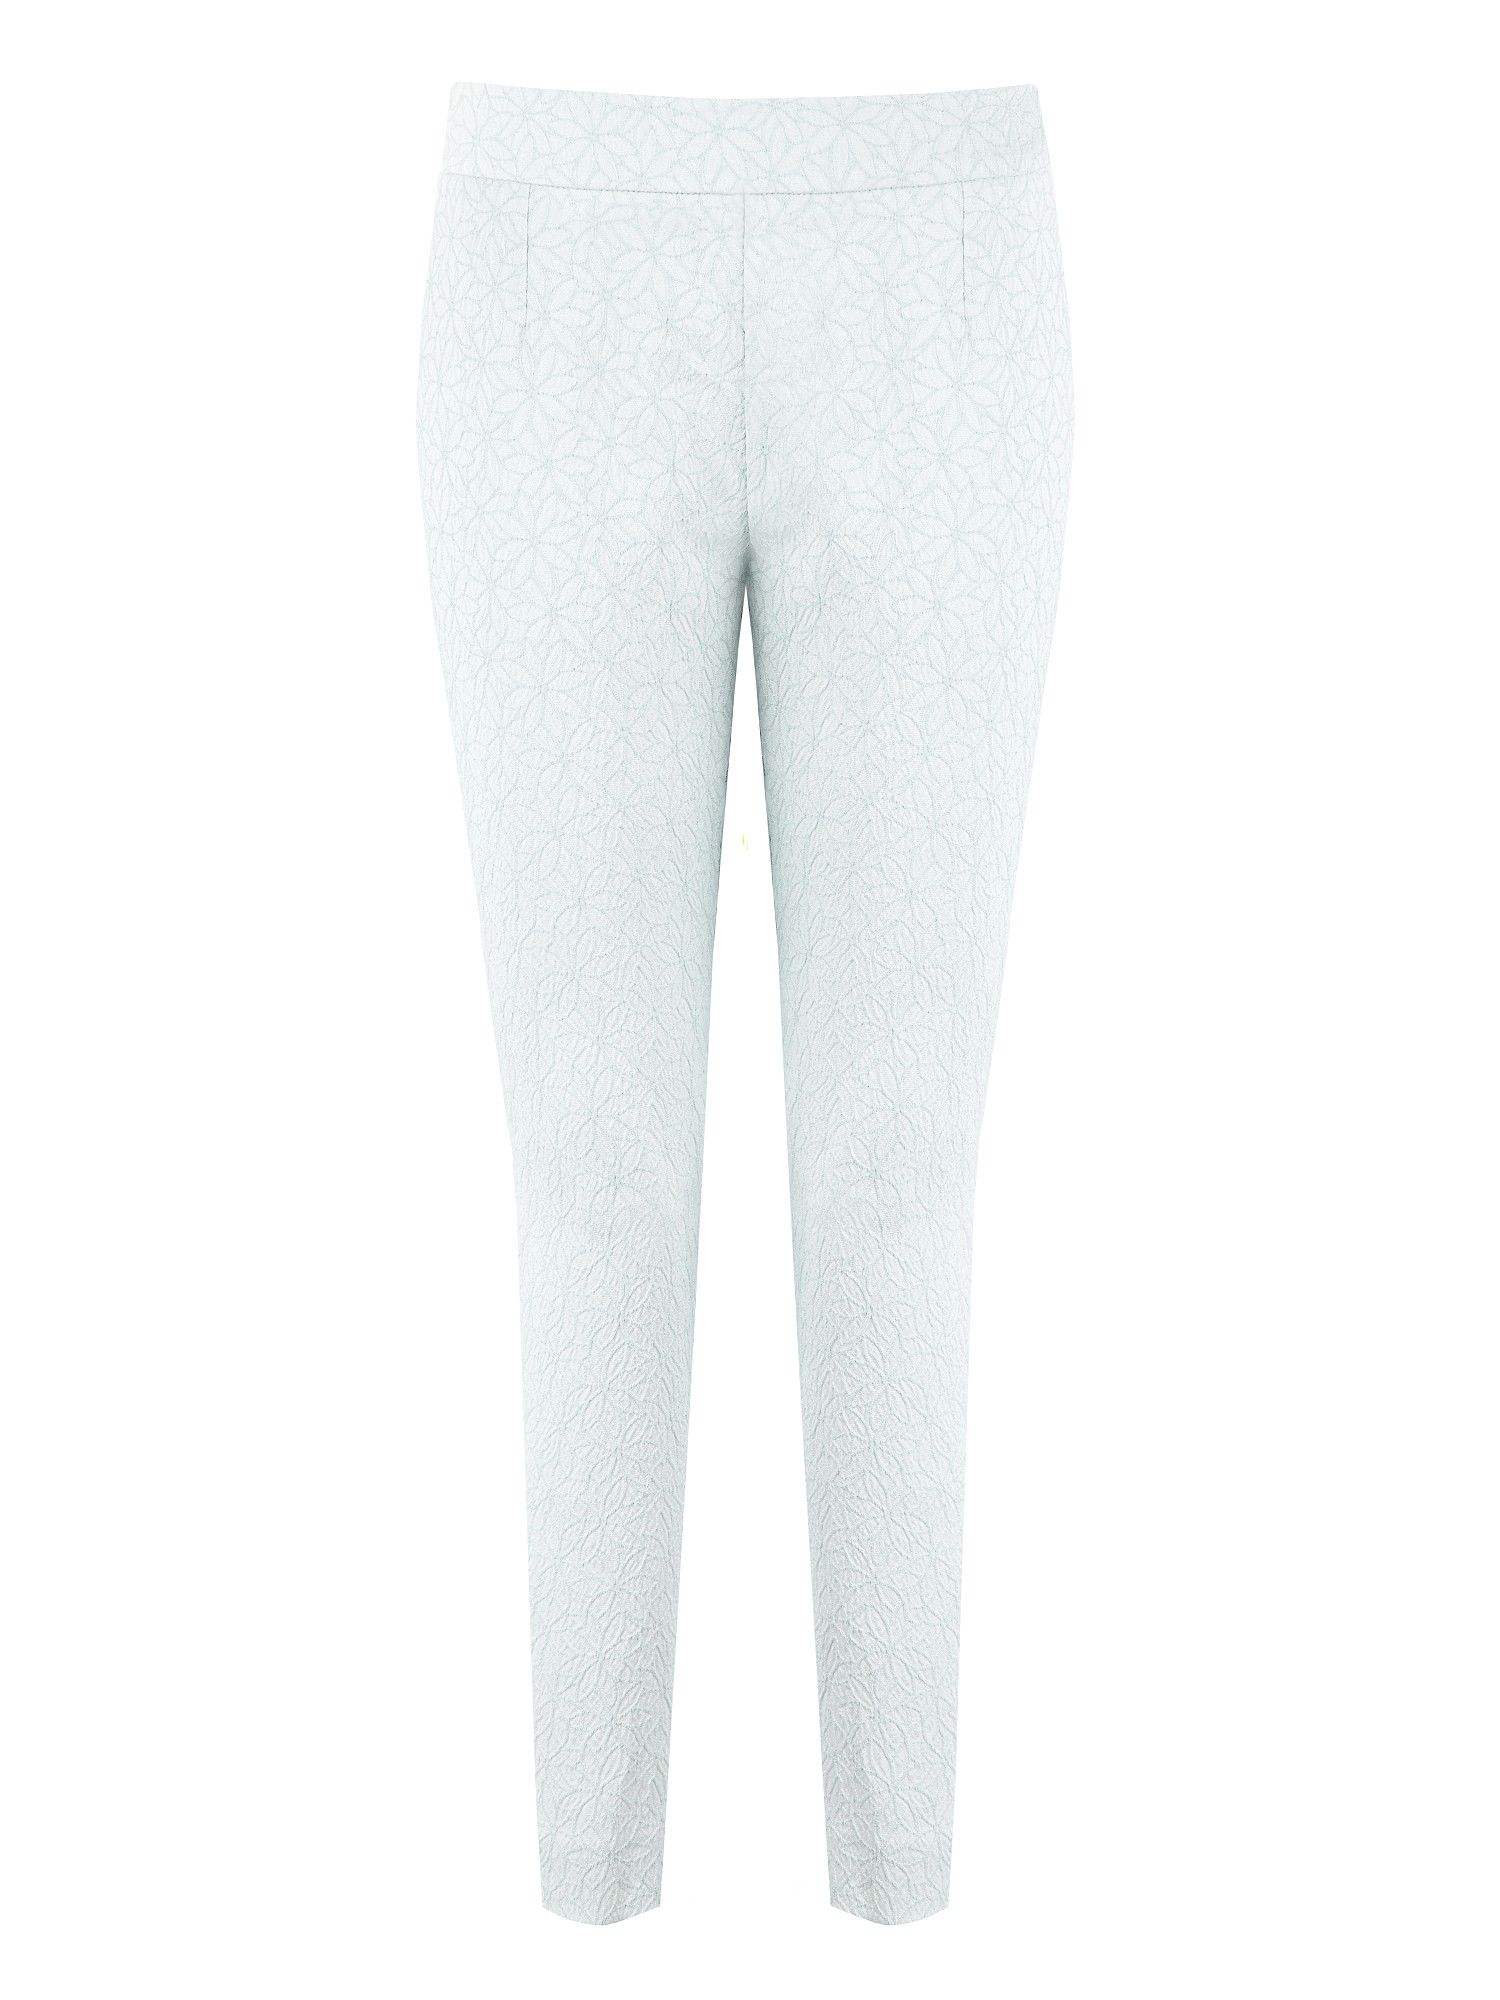 Duck egg blue daisy jacquard trousers